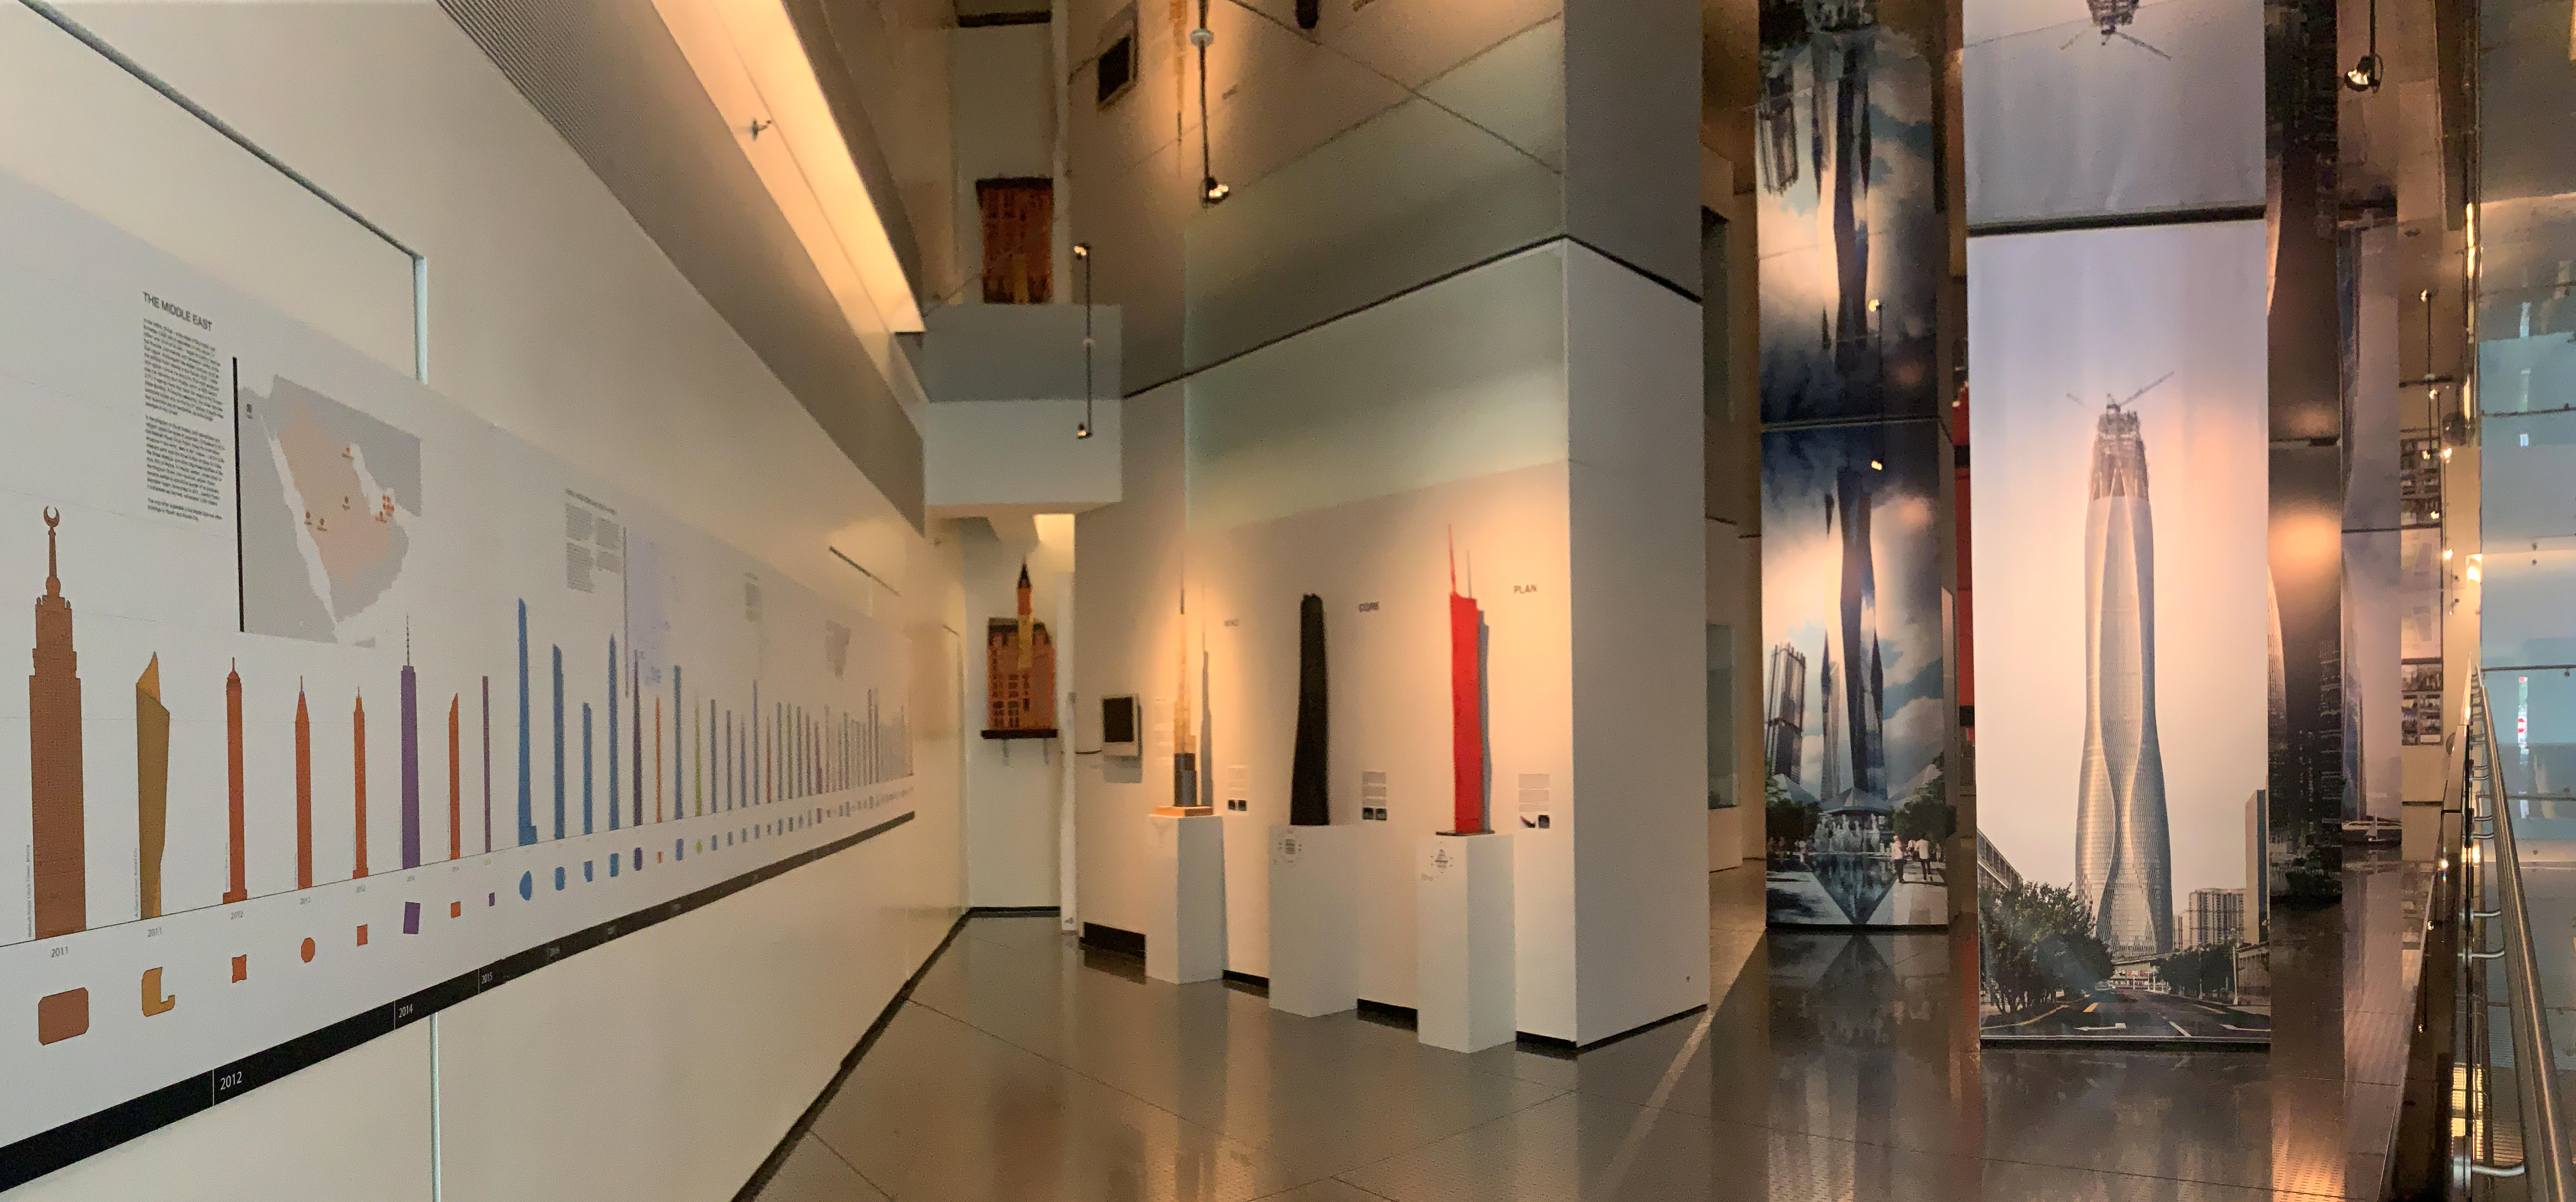 Exhibition installation including a graphic outlining the different heights of the tallest skyscrapers.